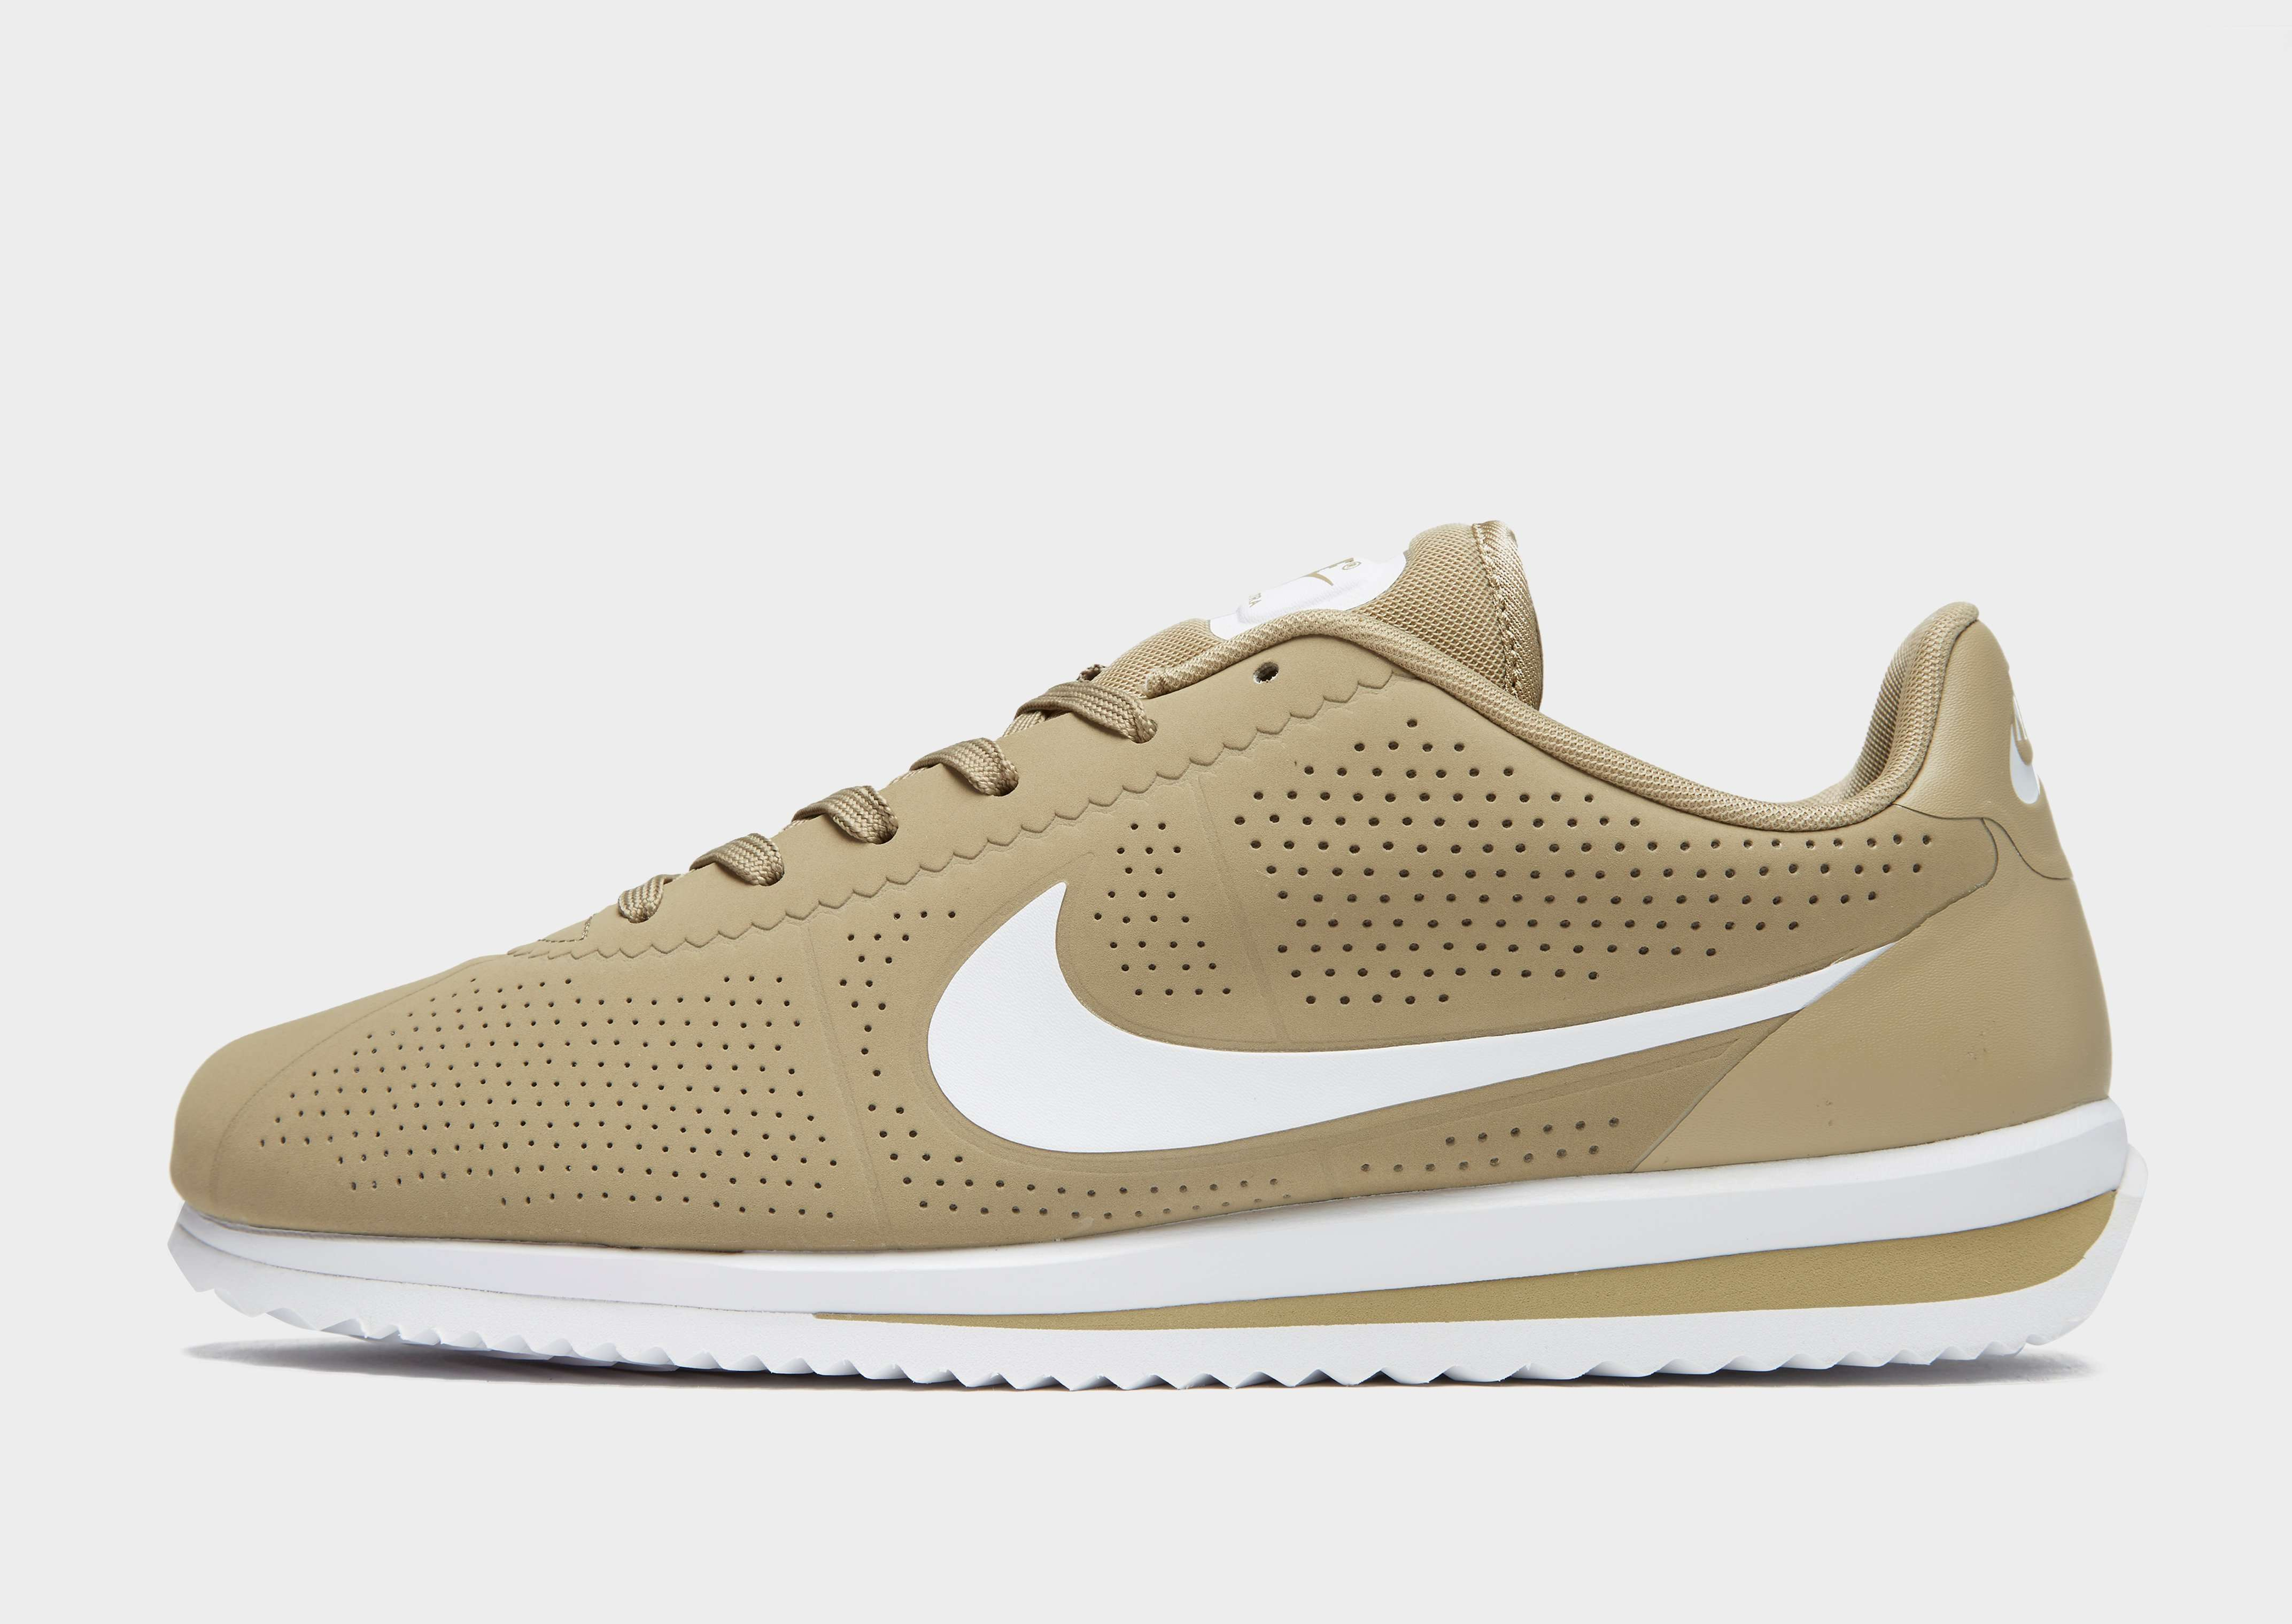 Nike Cortez Ultra Moire - Men's Trainers - Green 273259